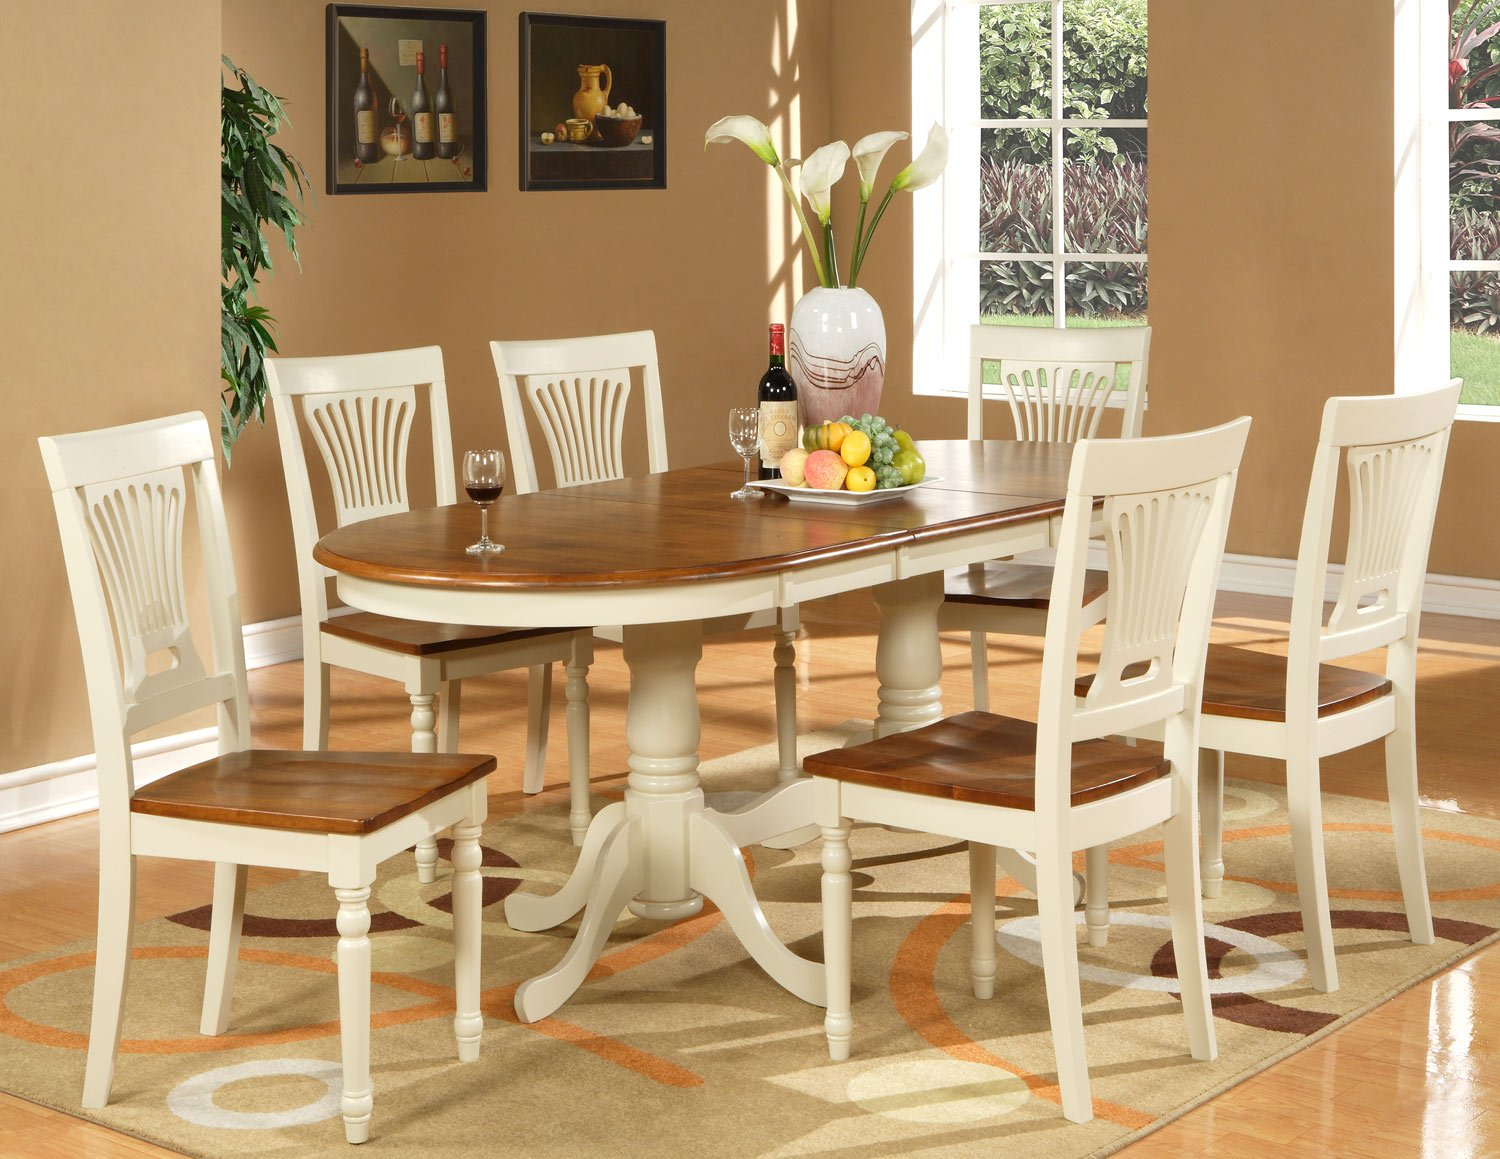 "7-PC Plainfield Dining Room Table Set + 6 Chairs - Size: 42""x78"" in Butter milk. SKU: PL7-WHI"